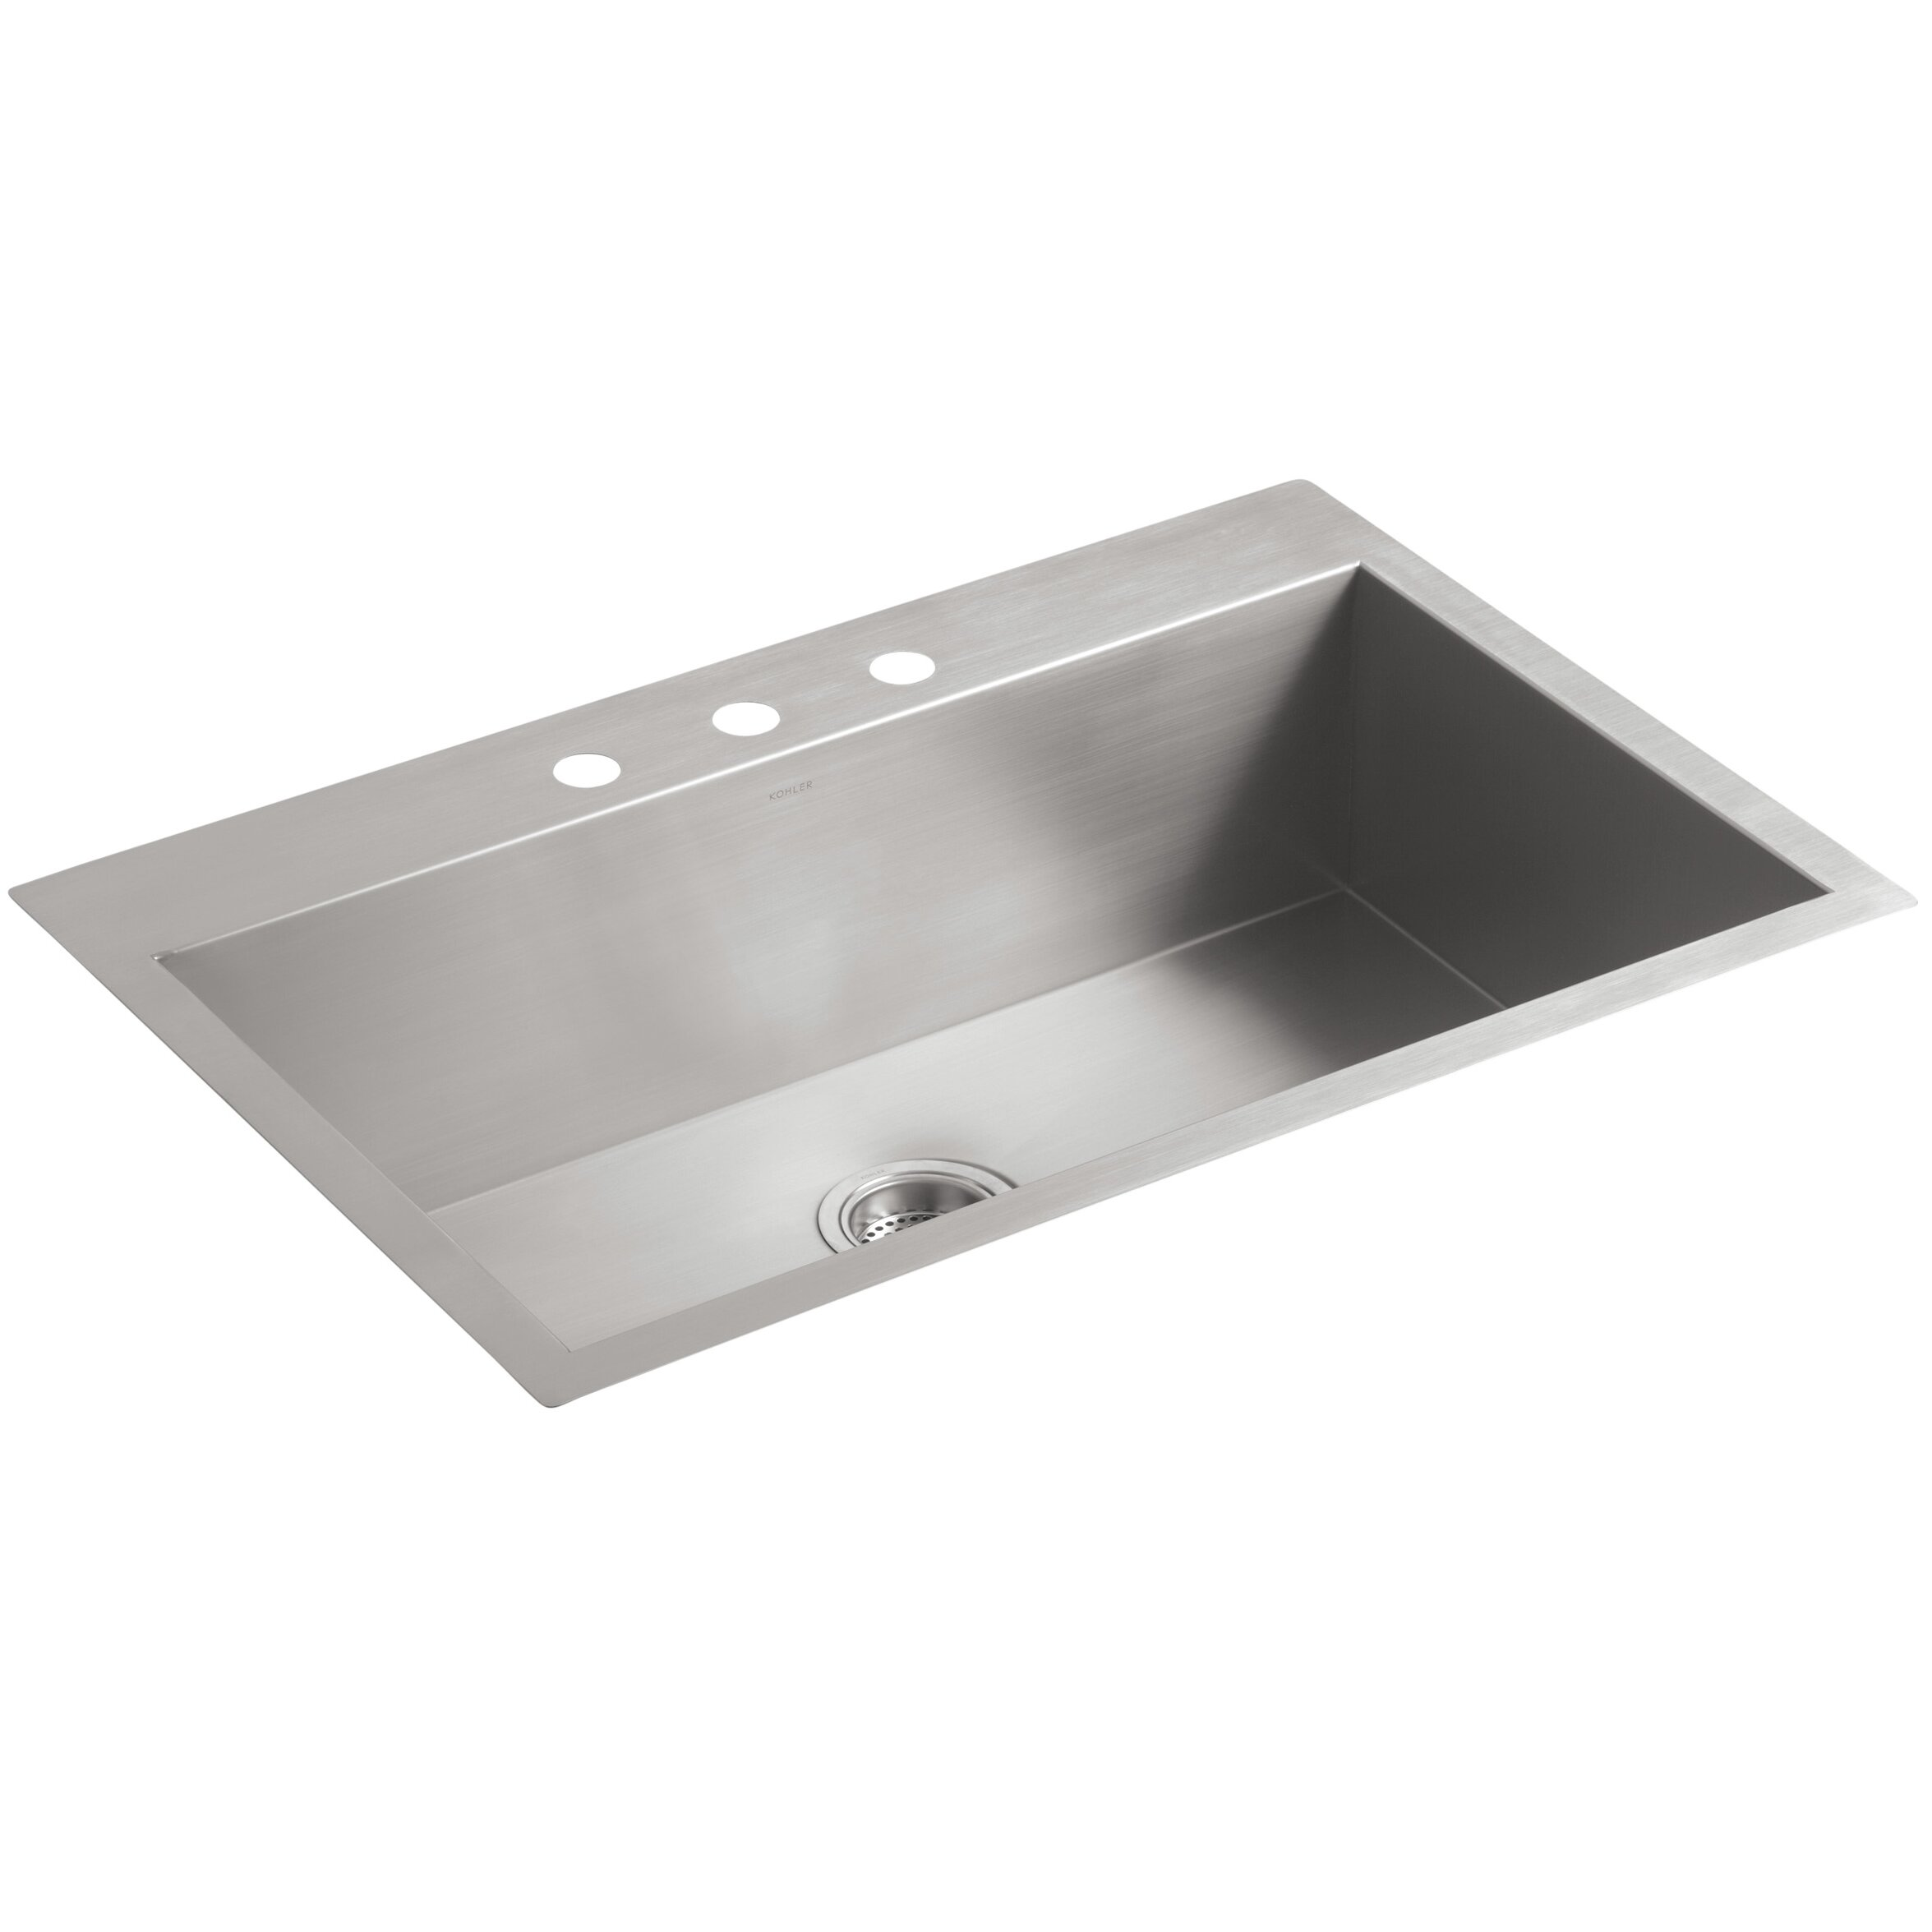 Kohler vault 33 x 22 x 9 5 16 top mount under mount for Best faucet for kitchen sink